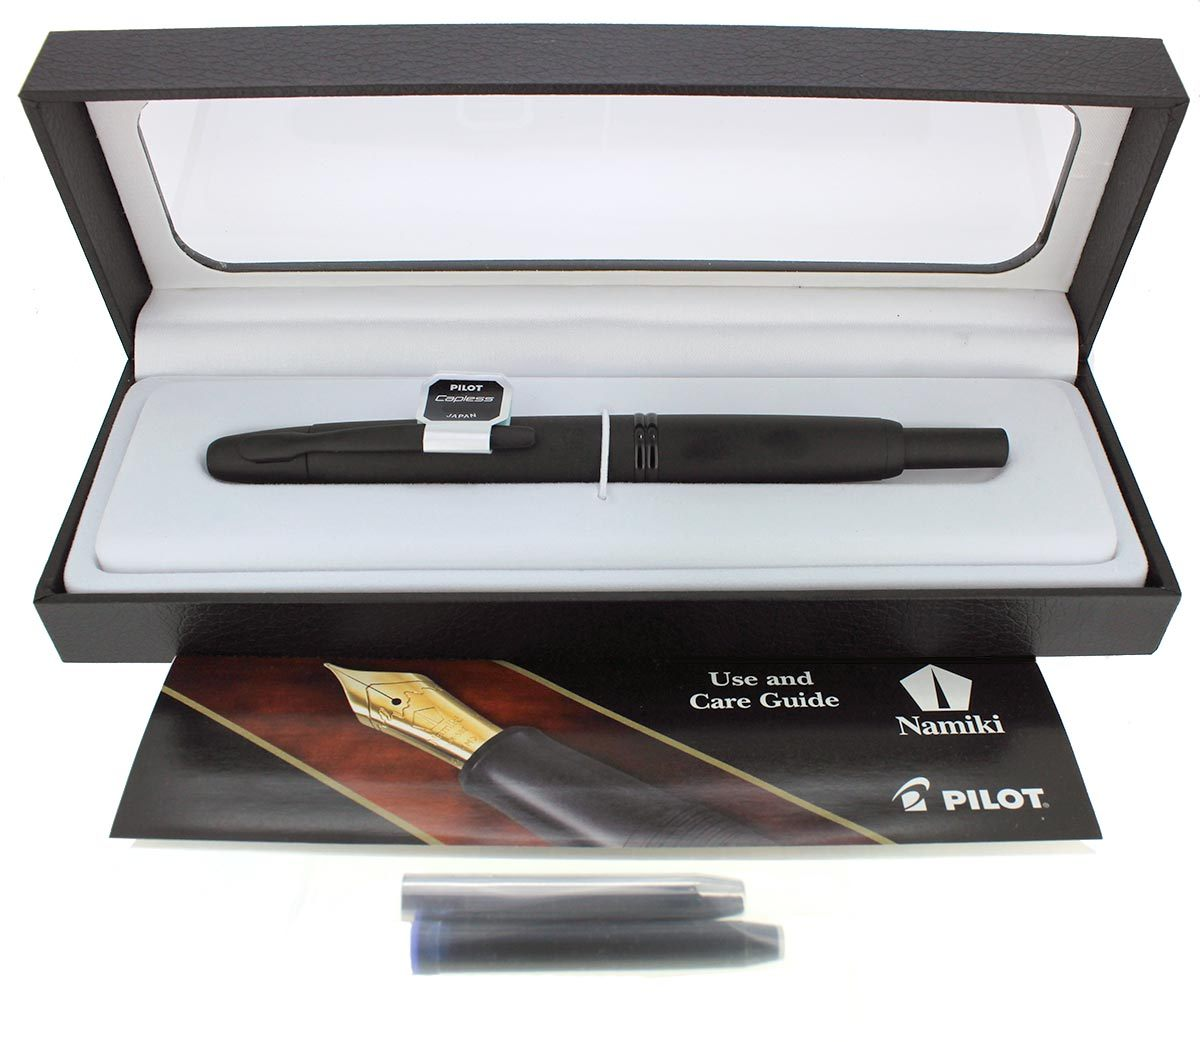 NEW PILOT NAMIKI VANISHING POINT MATTE BLACK WITH BLACK TRIM 18K NIB FOUNTAIN PEN OFFERED BY ANTIQUE DIGGER